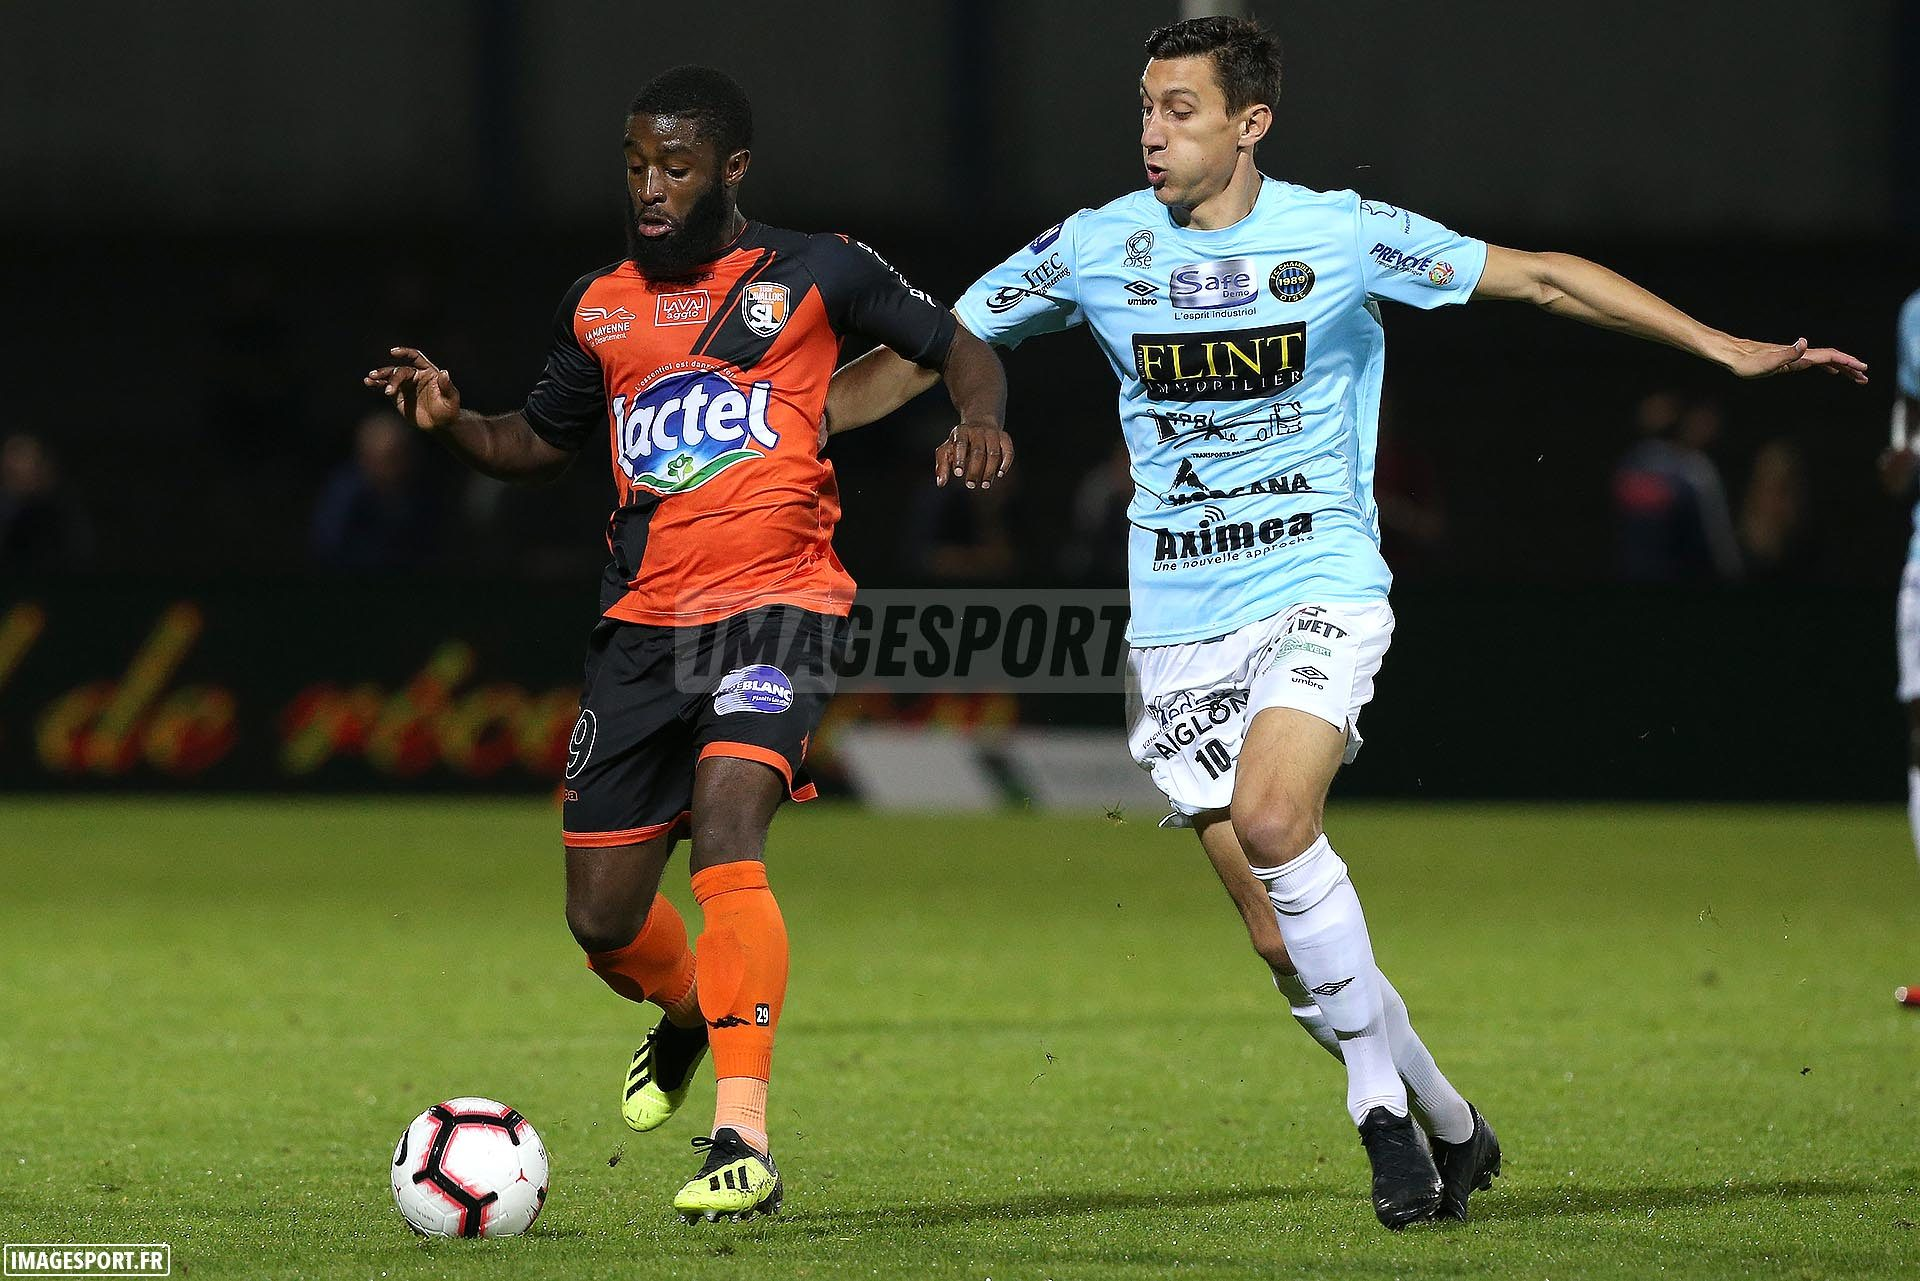 Stéphane LAMBESE (Stade Lavallois) / Guillaume HEINRY (FC Chambly Oise)